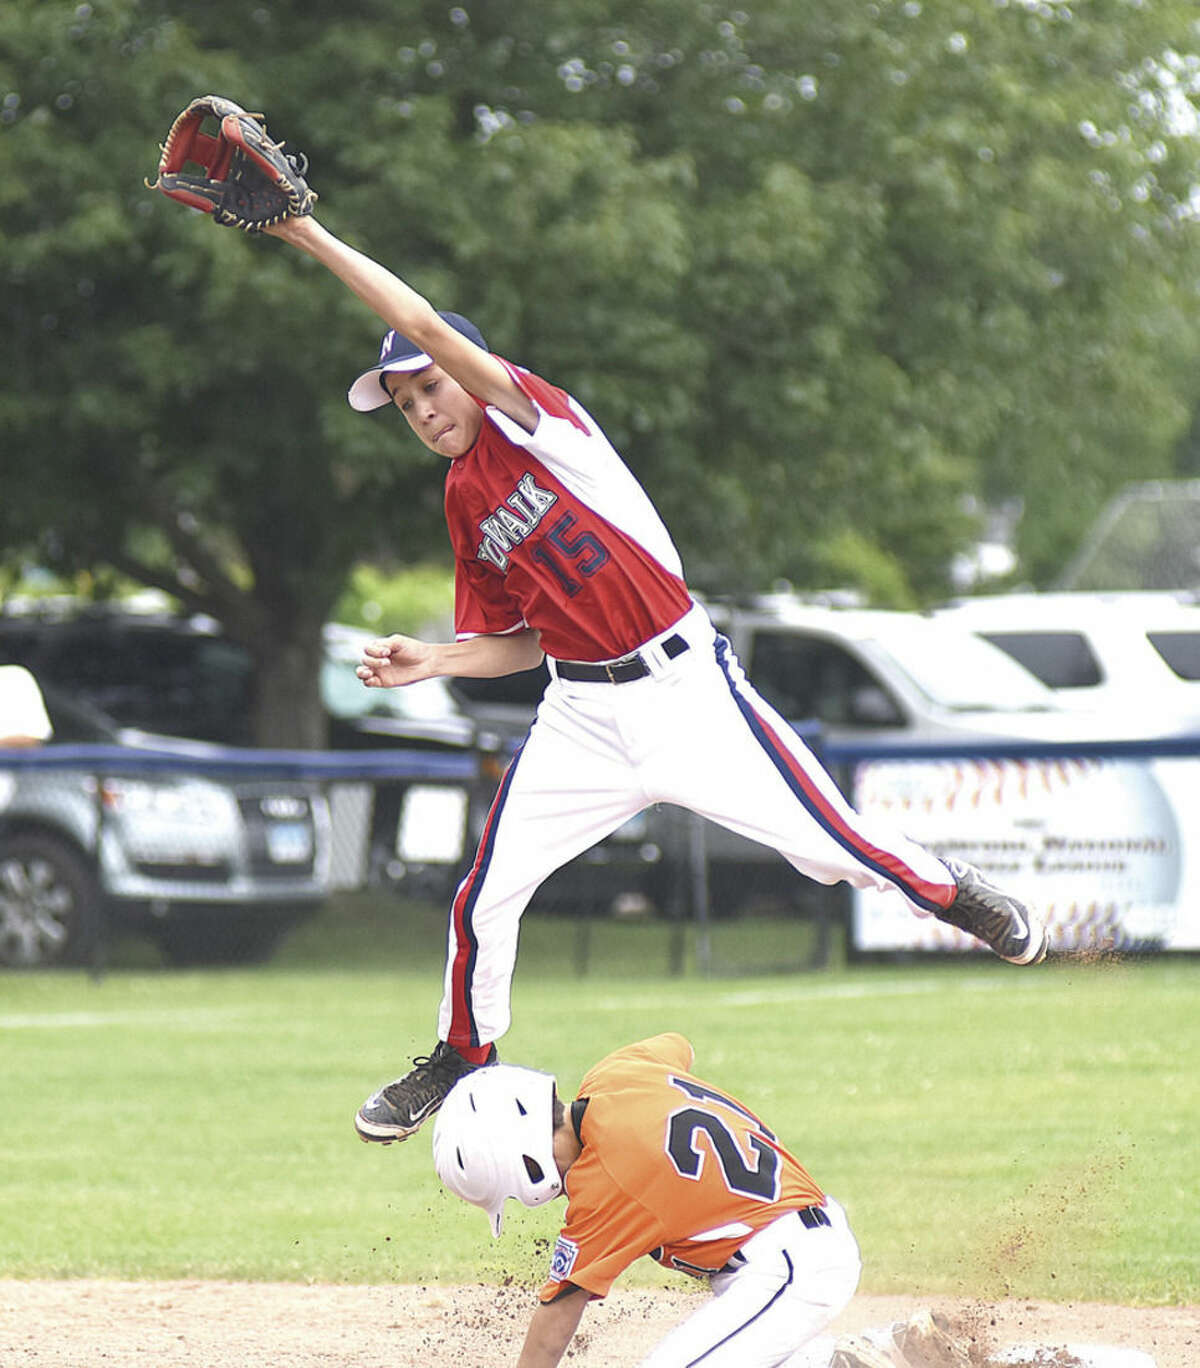 Hour photo/John Nash Norwalk shortstop Korey Morton, top, extends high for a throw as Ridgefield's Alex Hanna slides safely into second base on a double during Saturday's District 1 12-year-old tournament game in Stamford.